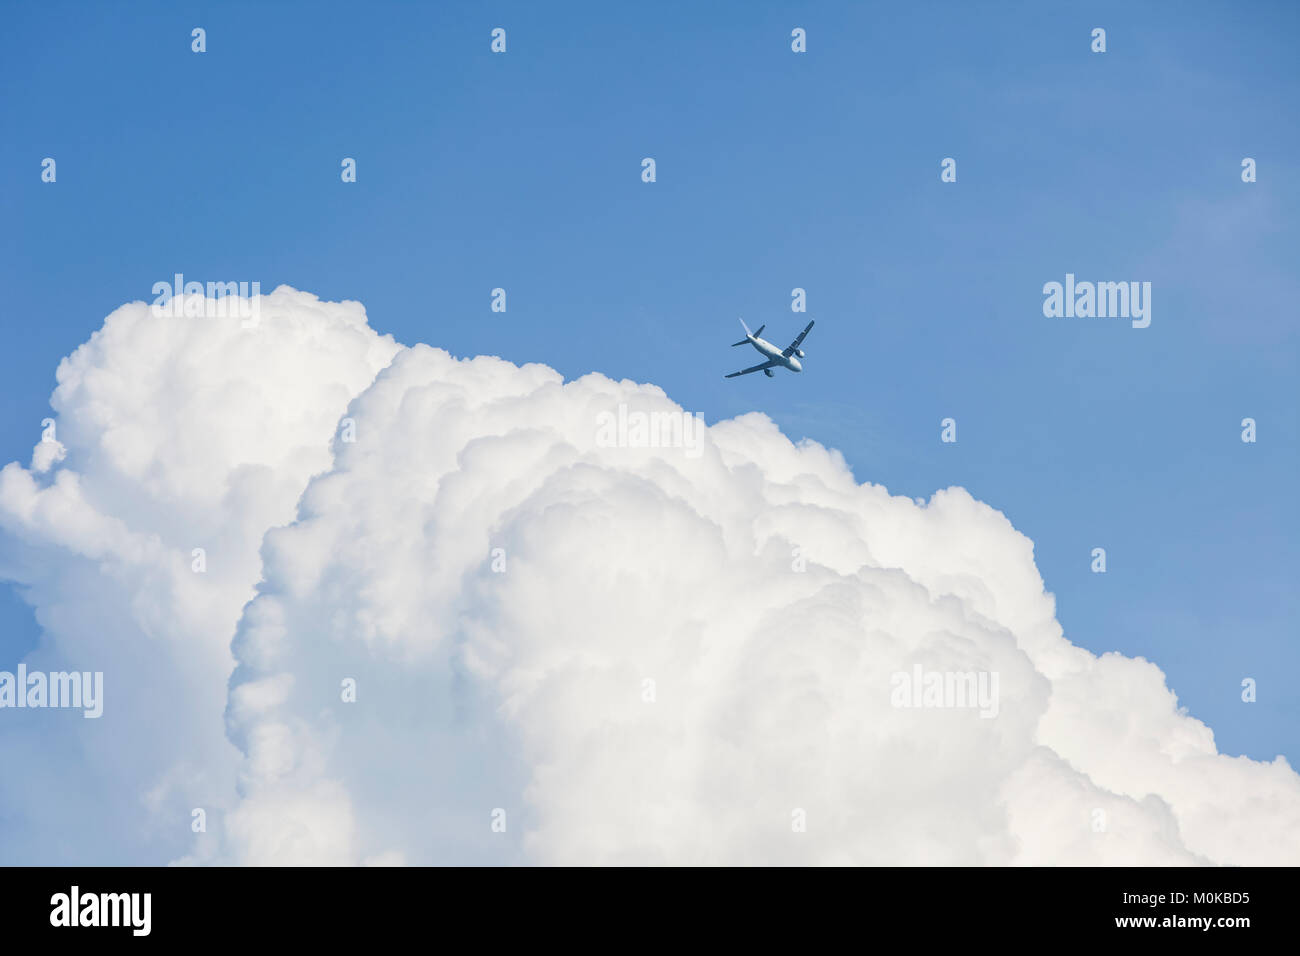 Commercial airliner and bank of clouds in a blue sky; Georgetown, Ontario, Canada - Stock Image